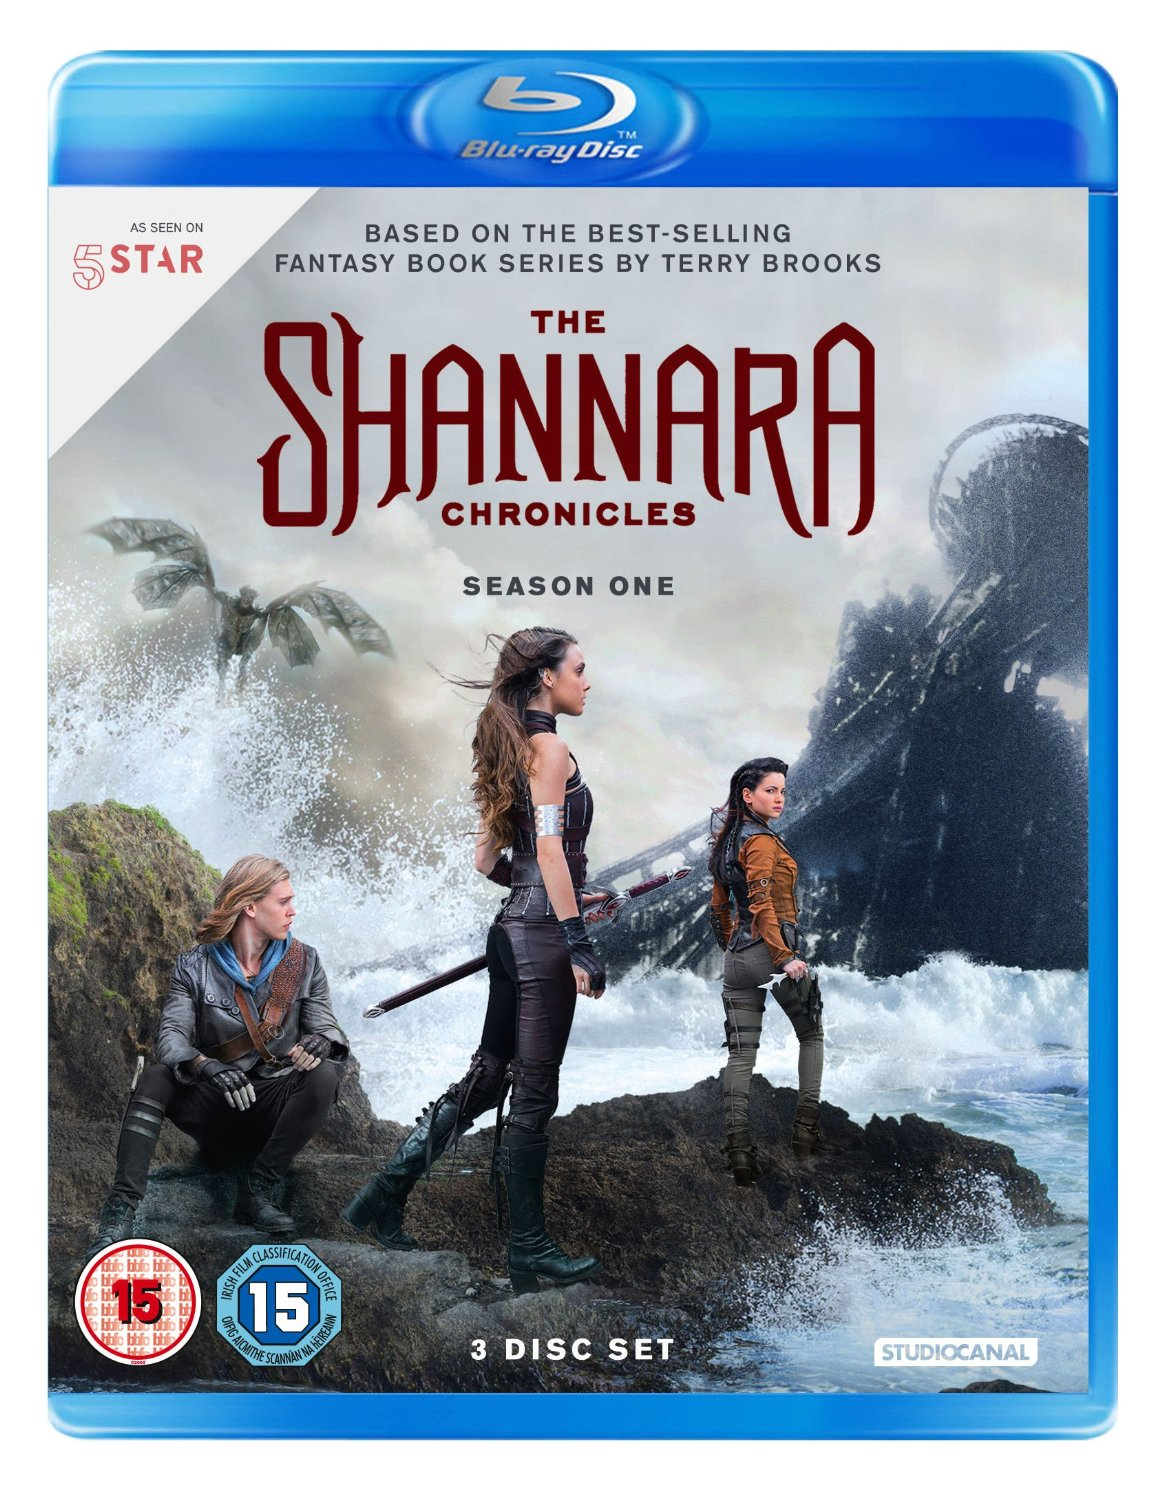 Shannara Chronicles Season 1 Blu-ray review